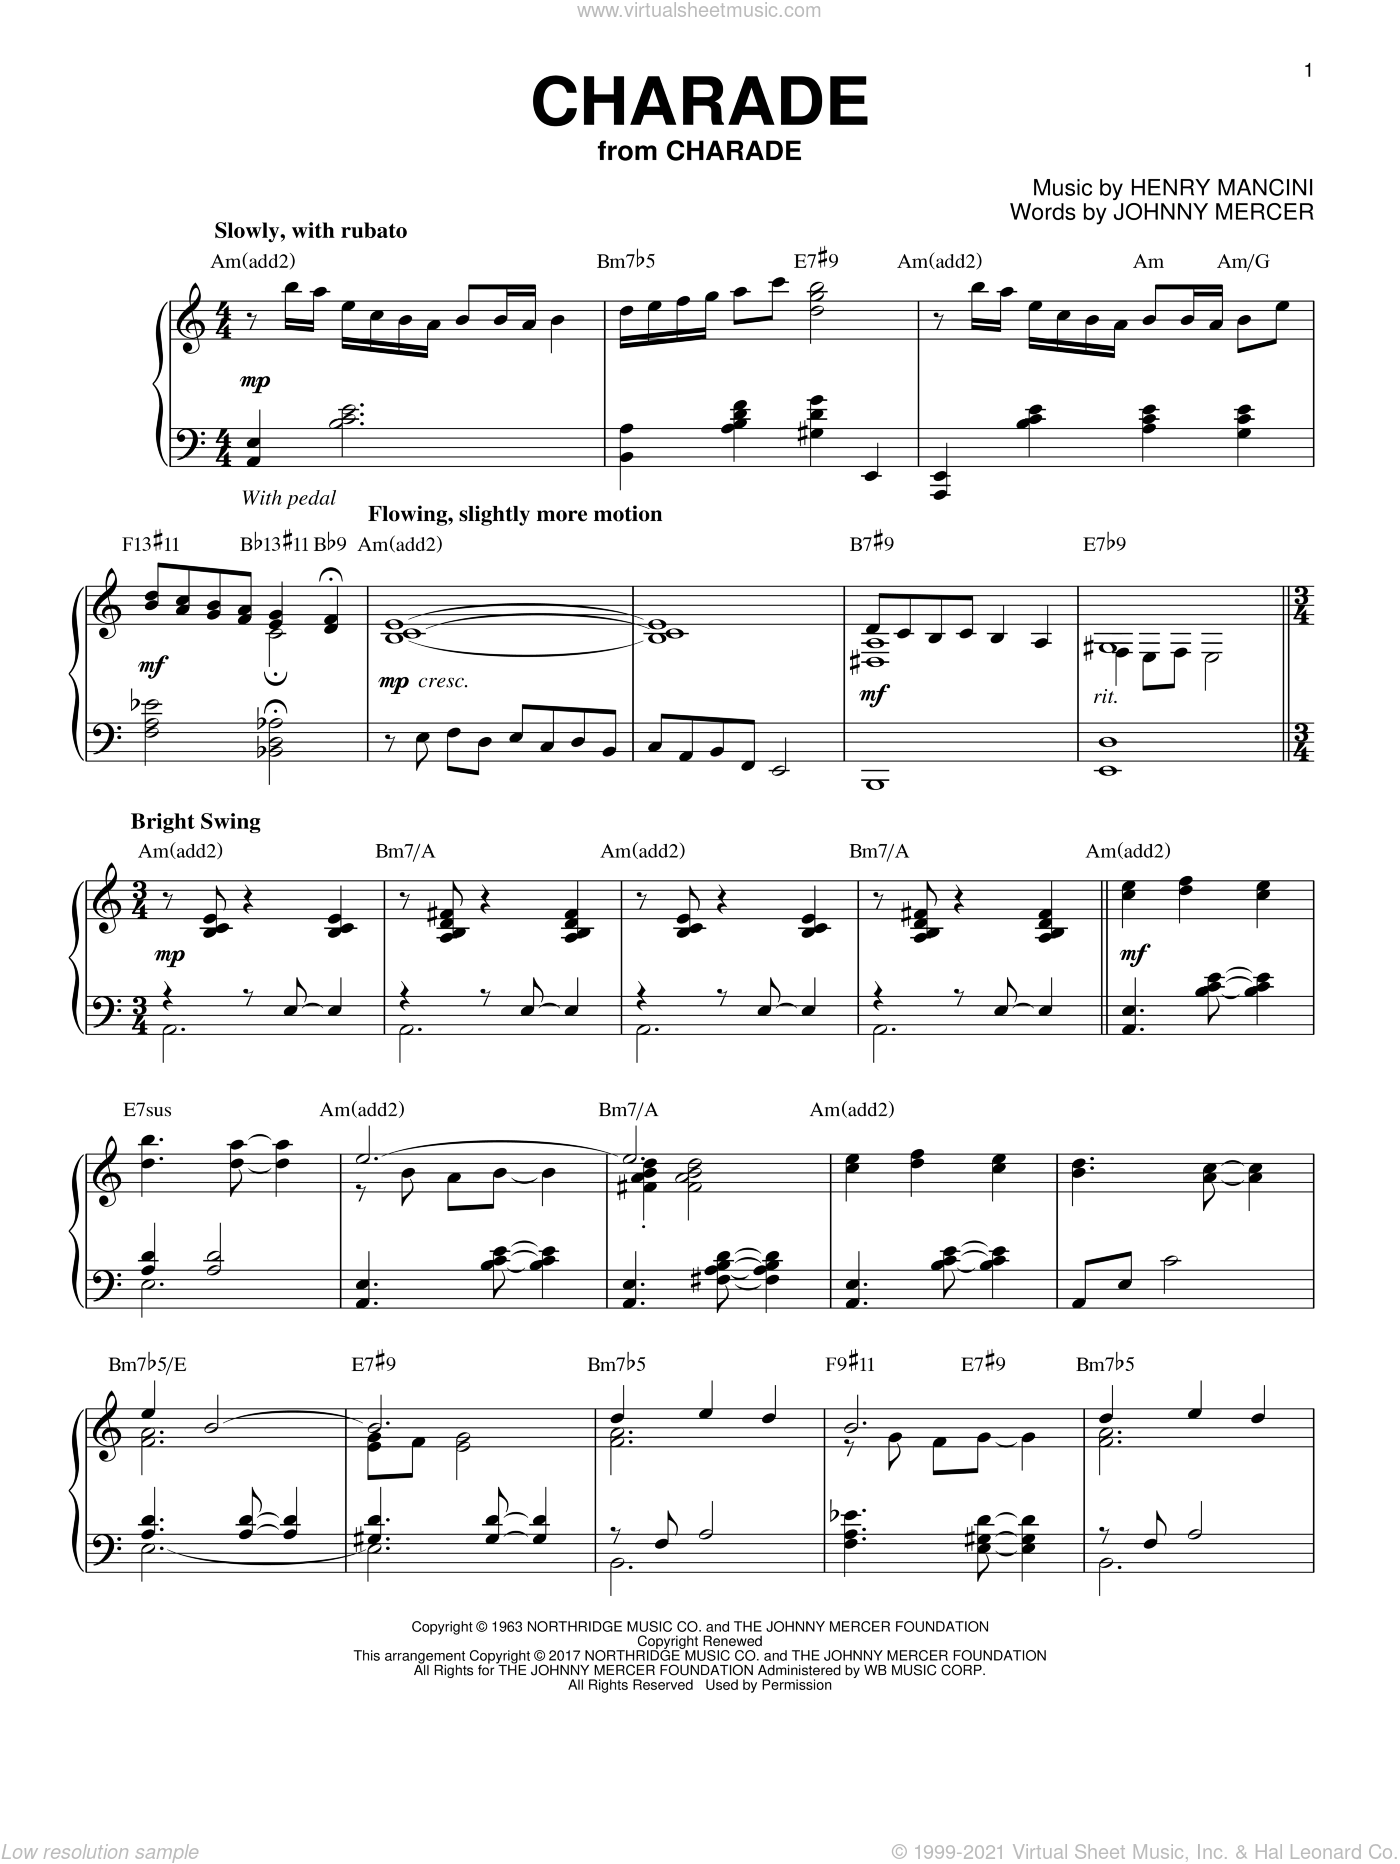 Charade [Jazz version] sheet music for piano solo by Henry Mancini, Andy Williams, Sammy Kaye and Johnny Mercer, intermediate skill level